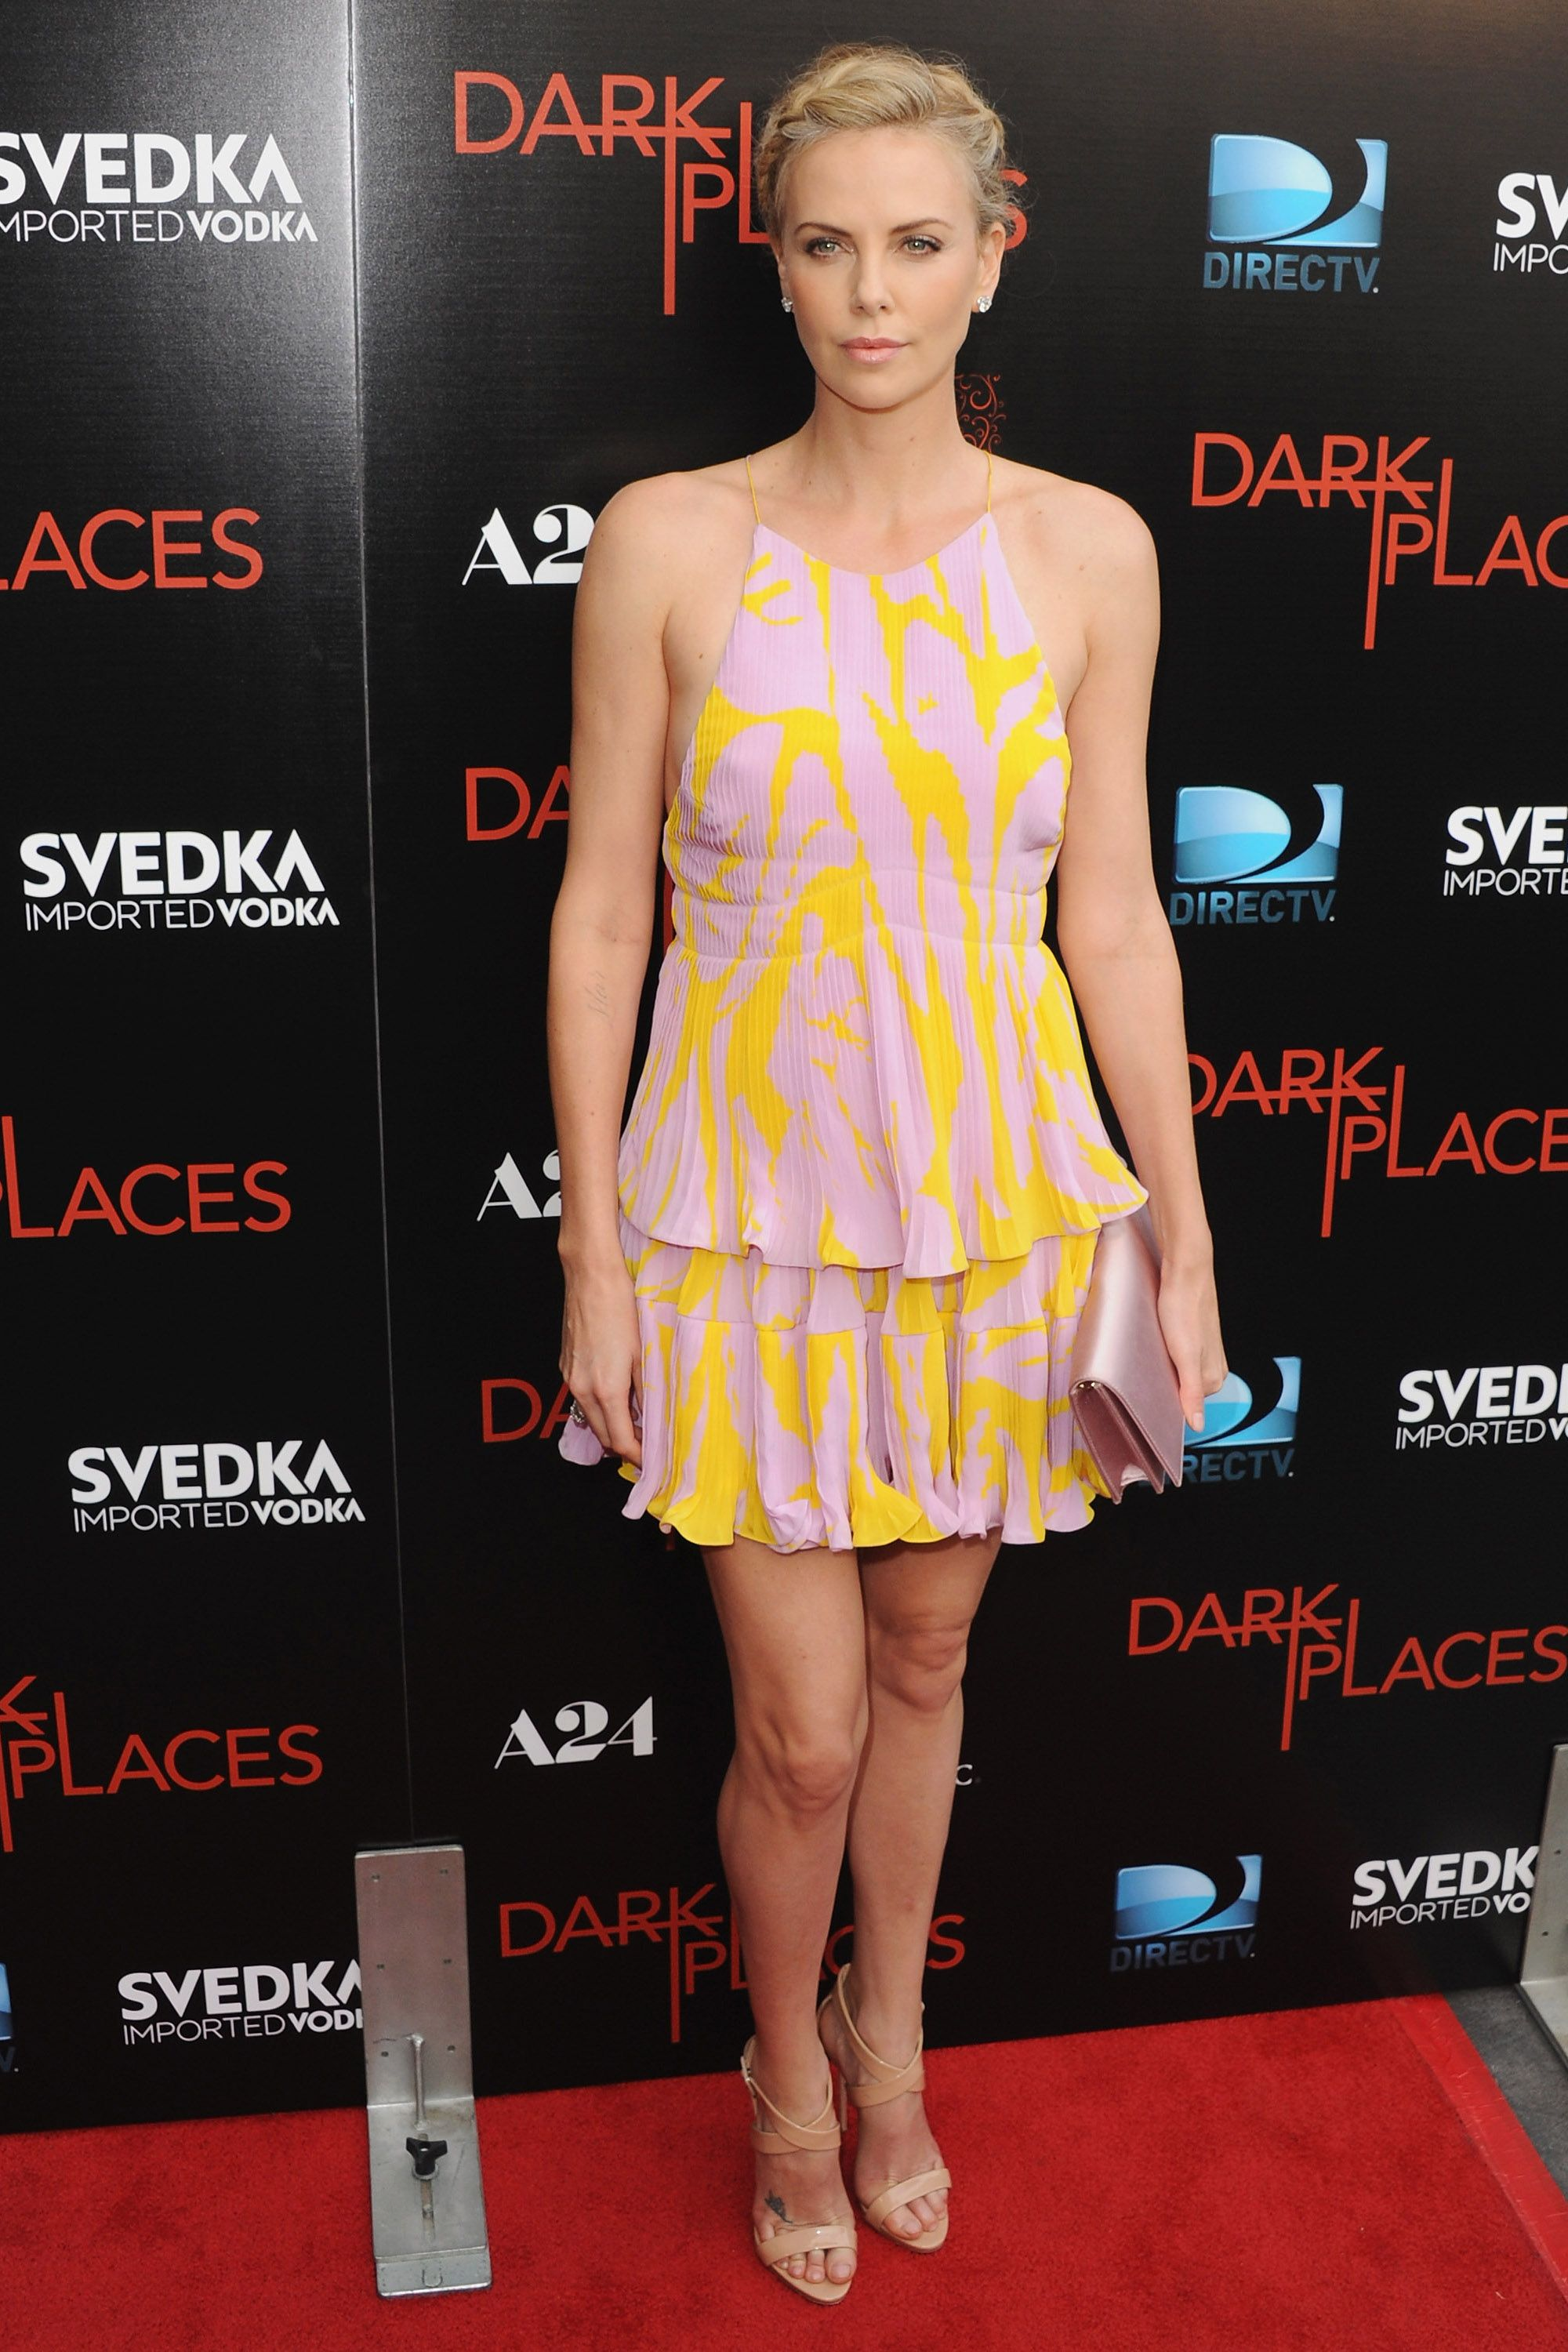 <p><strong>What: </strong>Christian Dior</p><p><strong>Where: </strong><em>Dark Places</em> Premiere</p><p><strong>Why:</strong> The actress heeds summer's effortless dress code at her latest premiere in this flirty sorbet-hued mini dress.</p>